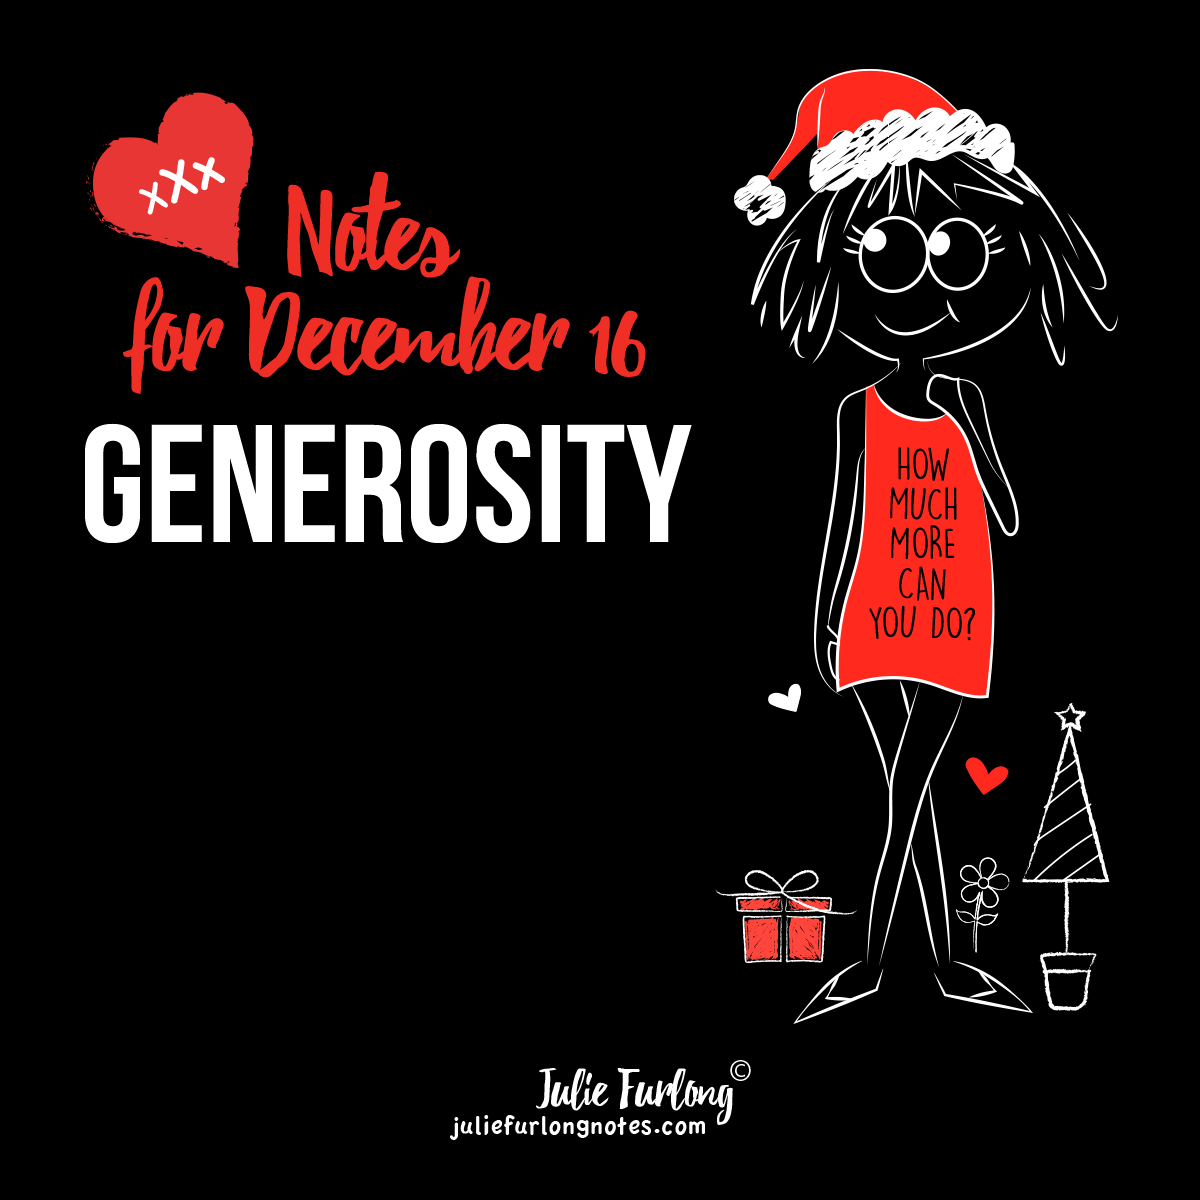 Julie-furlong-notes-generosity